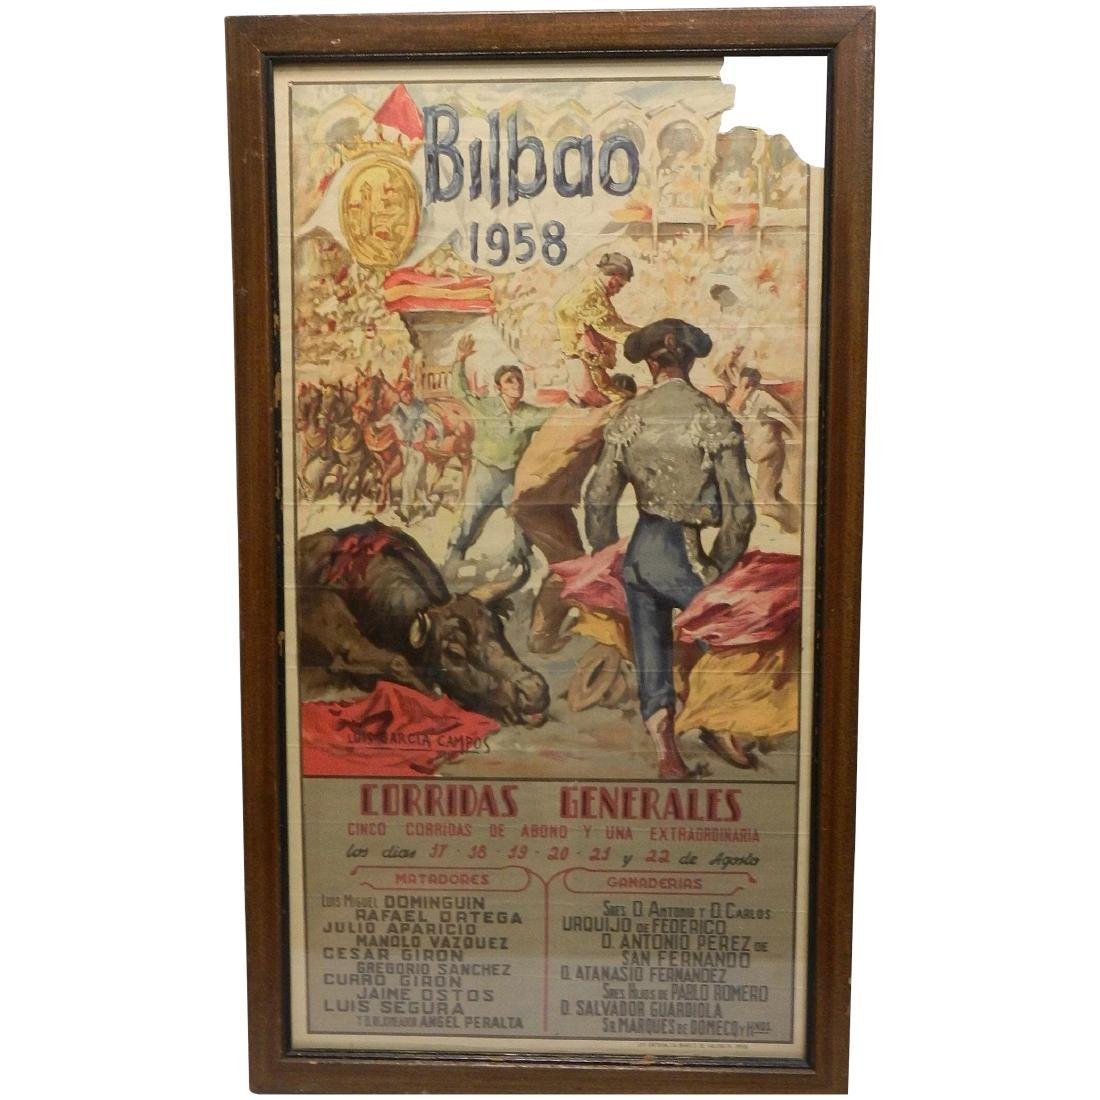 Vintage Original Bullfighting Poster from Bilbao Spain